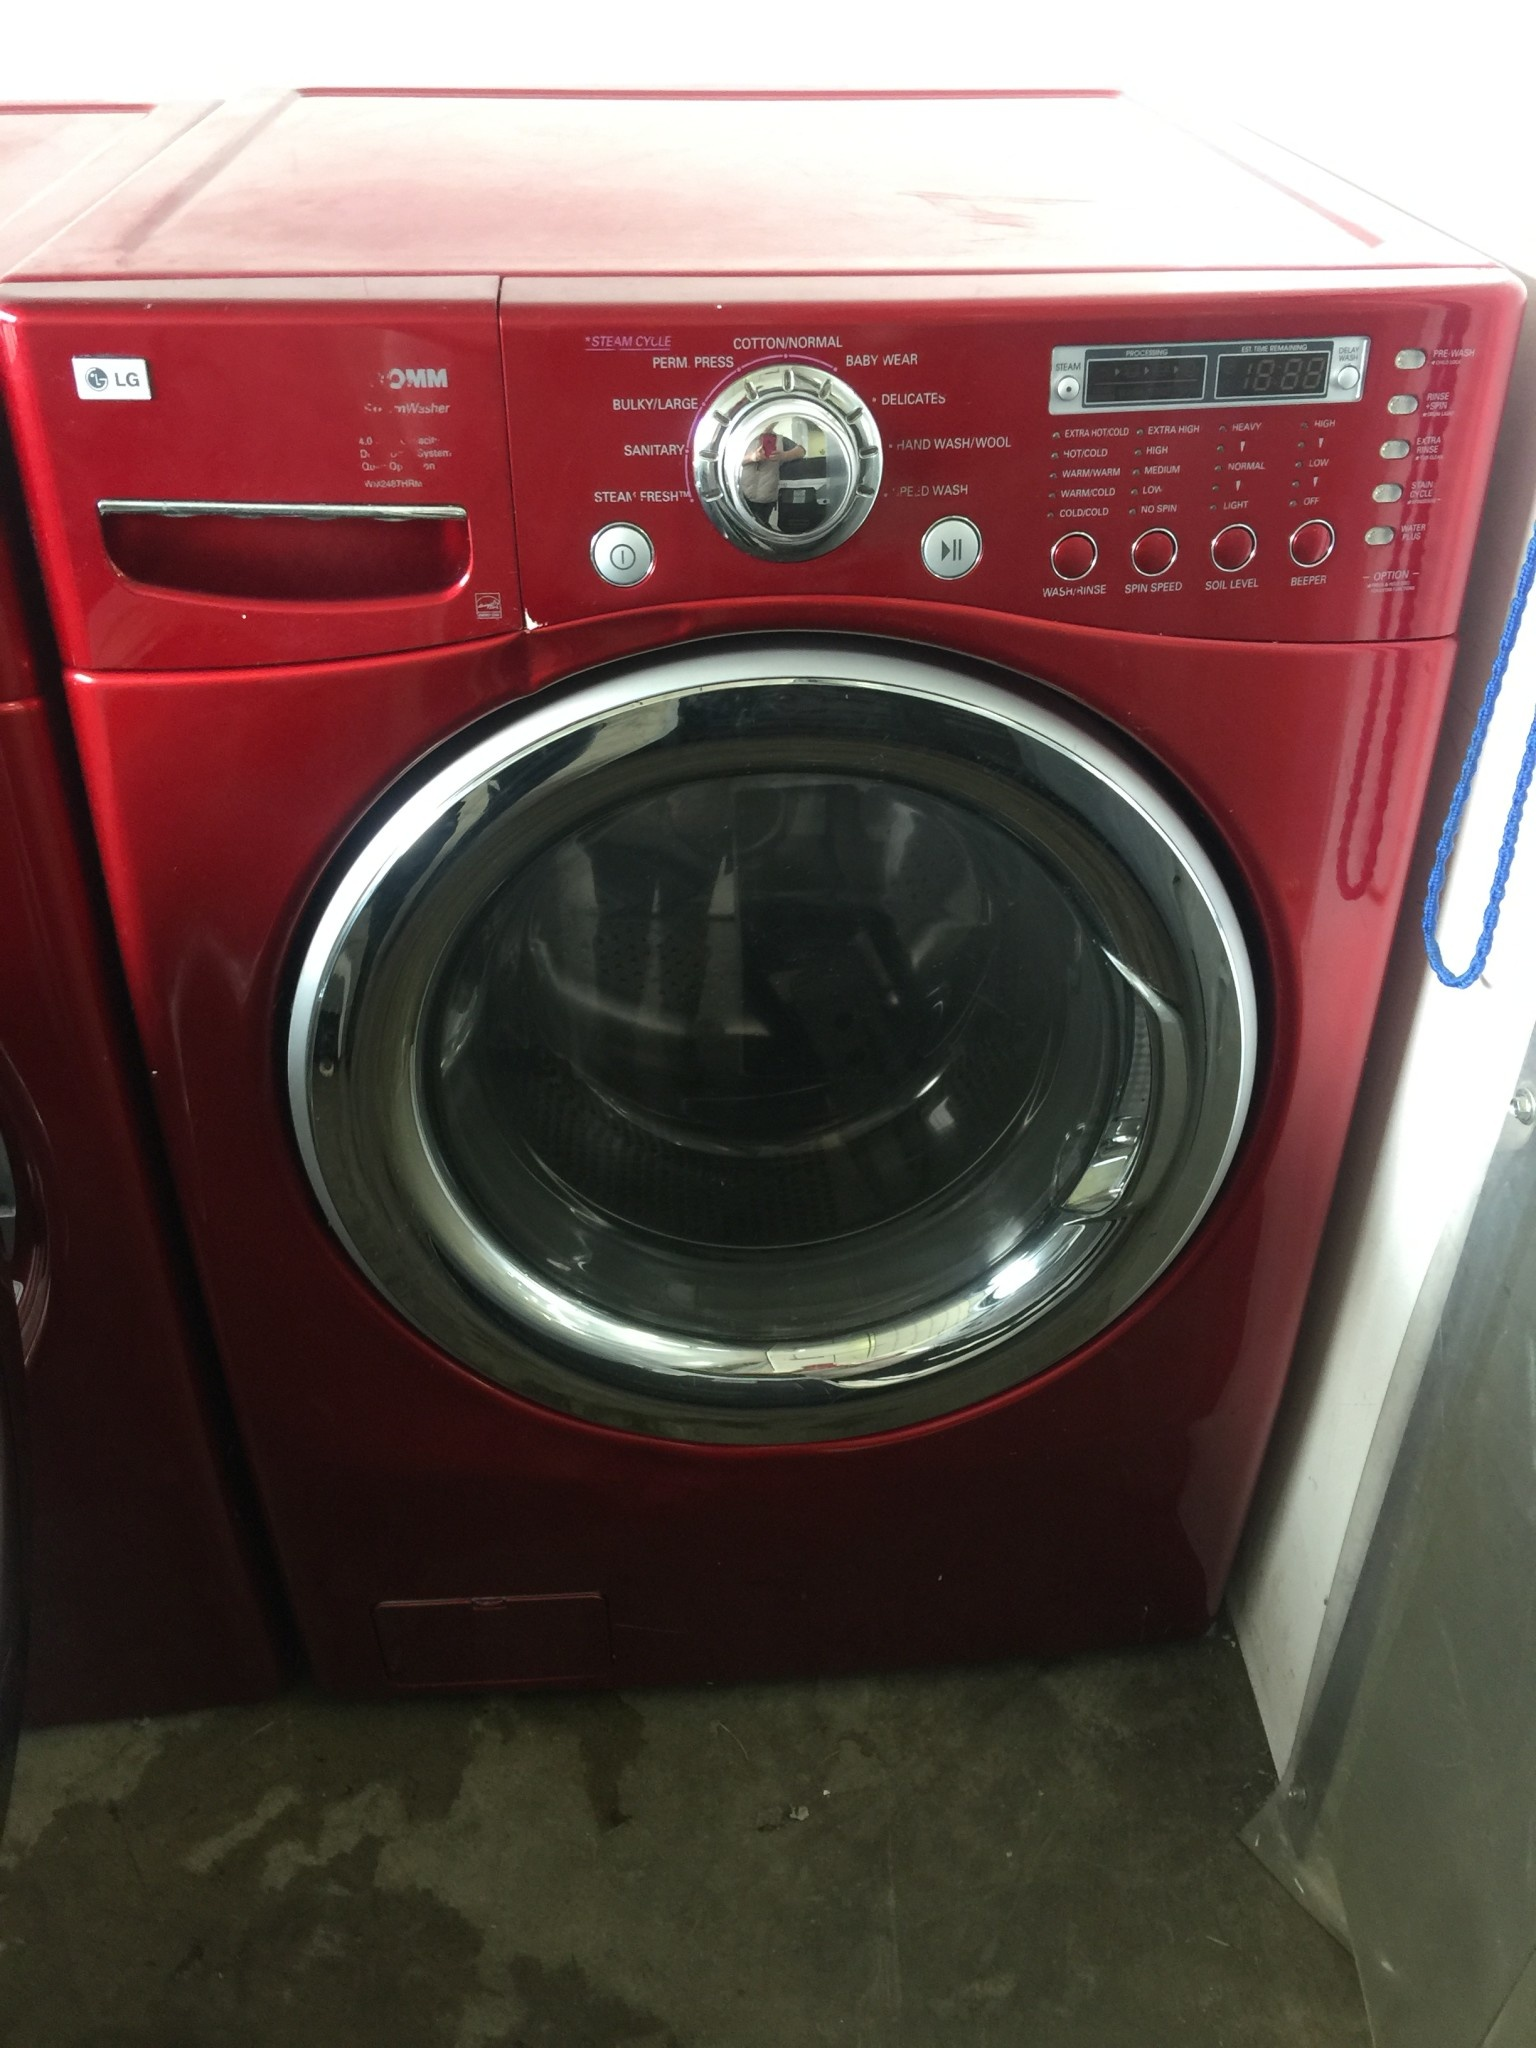 LG LG TROMM FRONT LOAD STEAM WASHING MACHINE IN RED - Discount ...